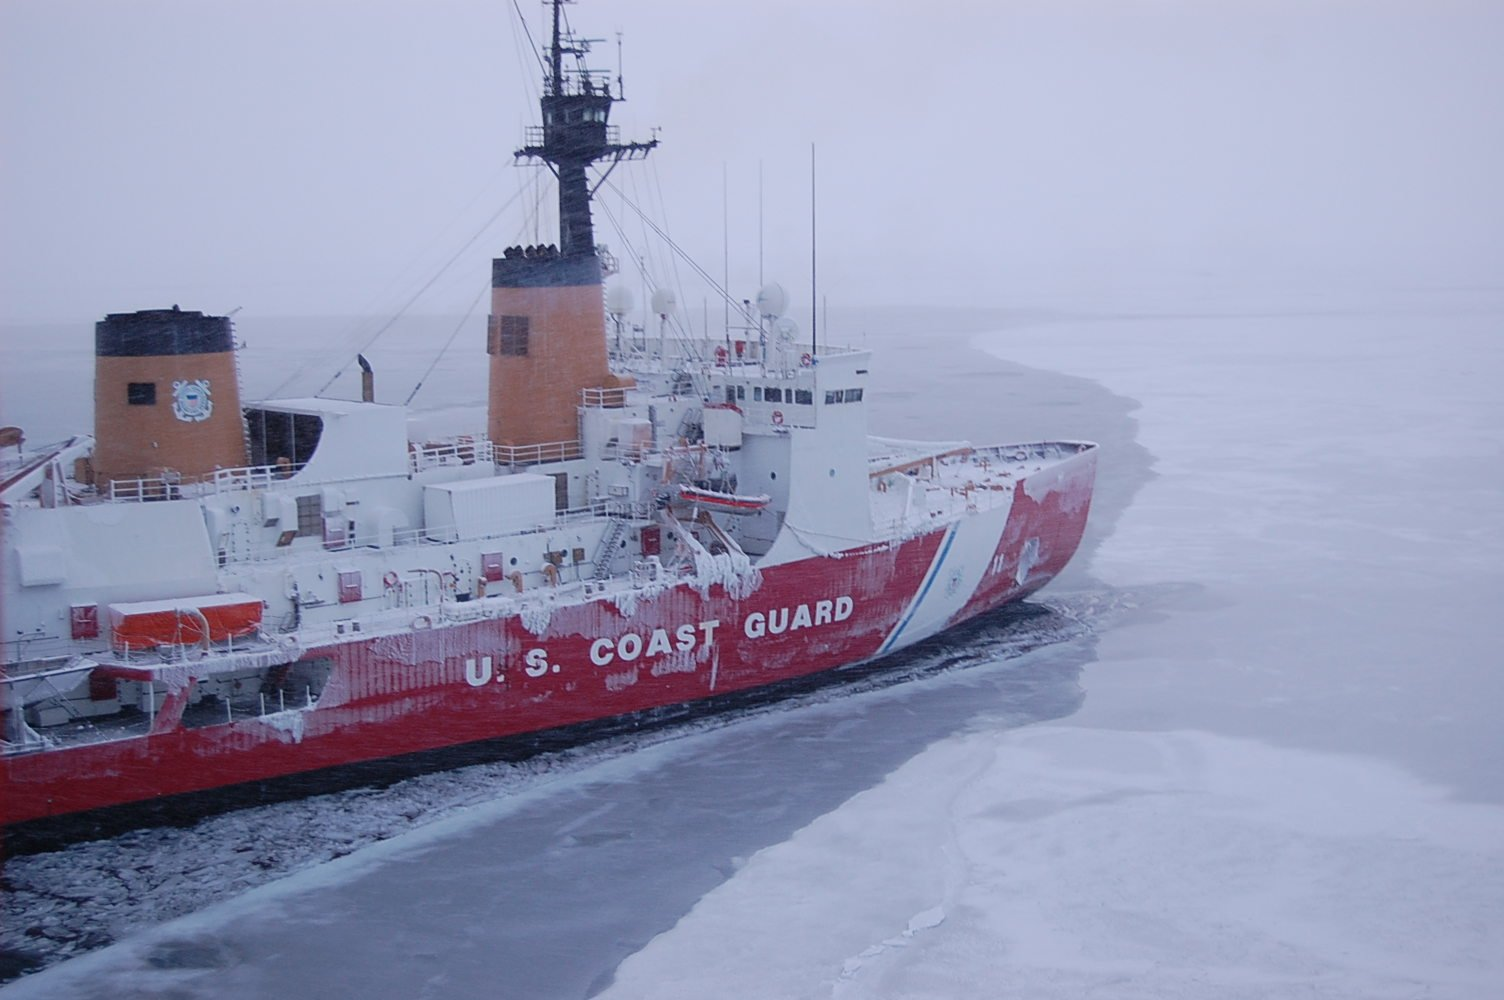 USCGC Polar Sea (WAGB-11). US Coast Guard Photo